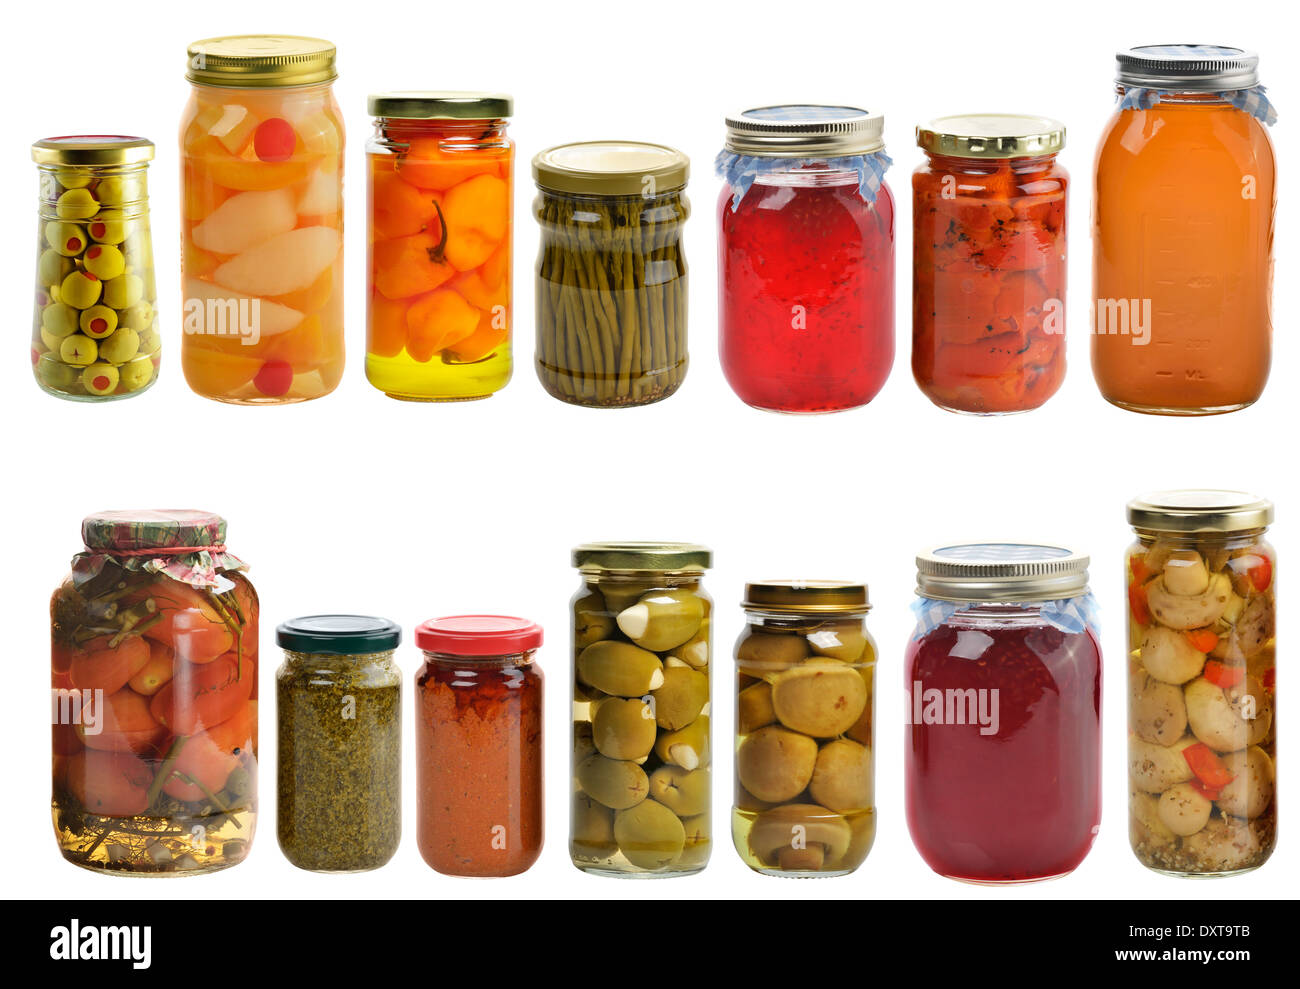 Preserved Food Collection Isolated On White Background - Stock Image